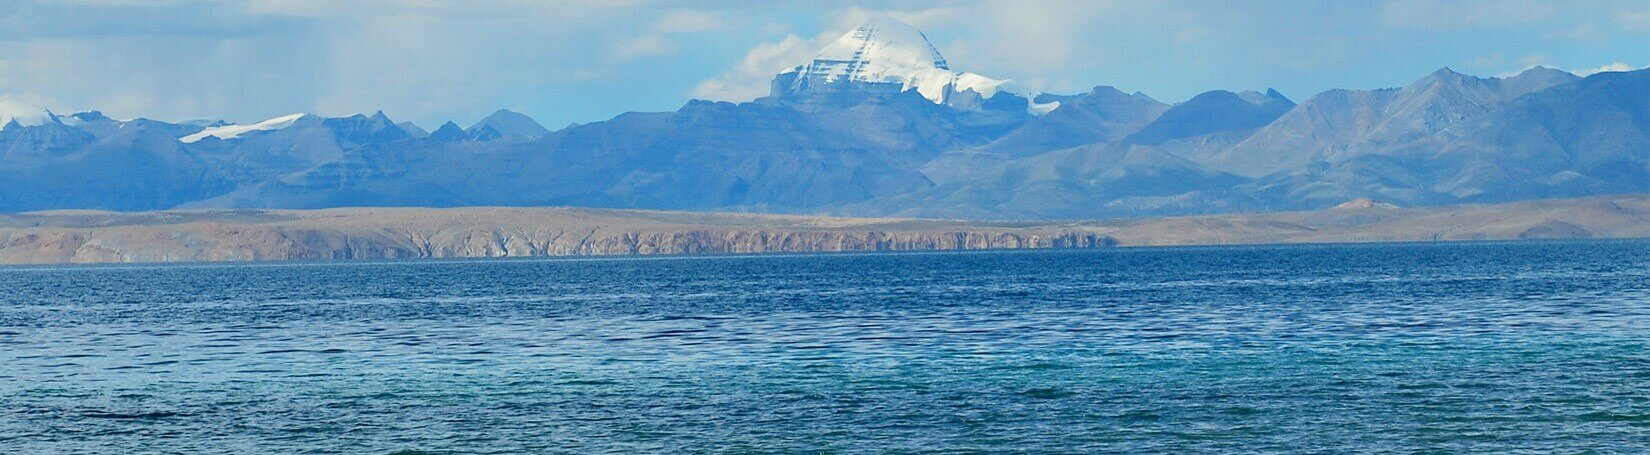 Lake Mansarovar and Mount Kailash view